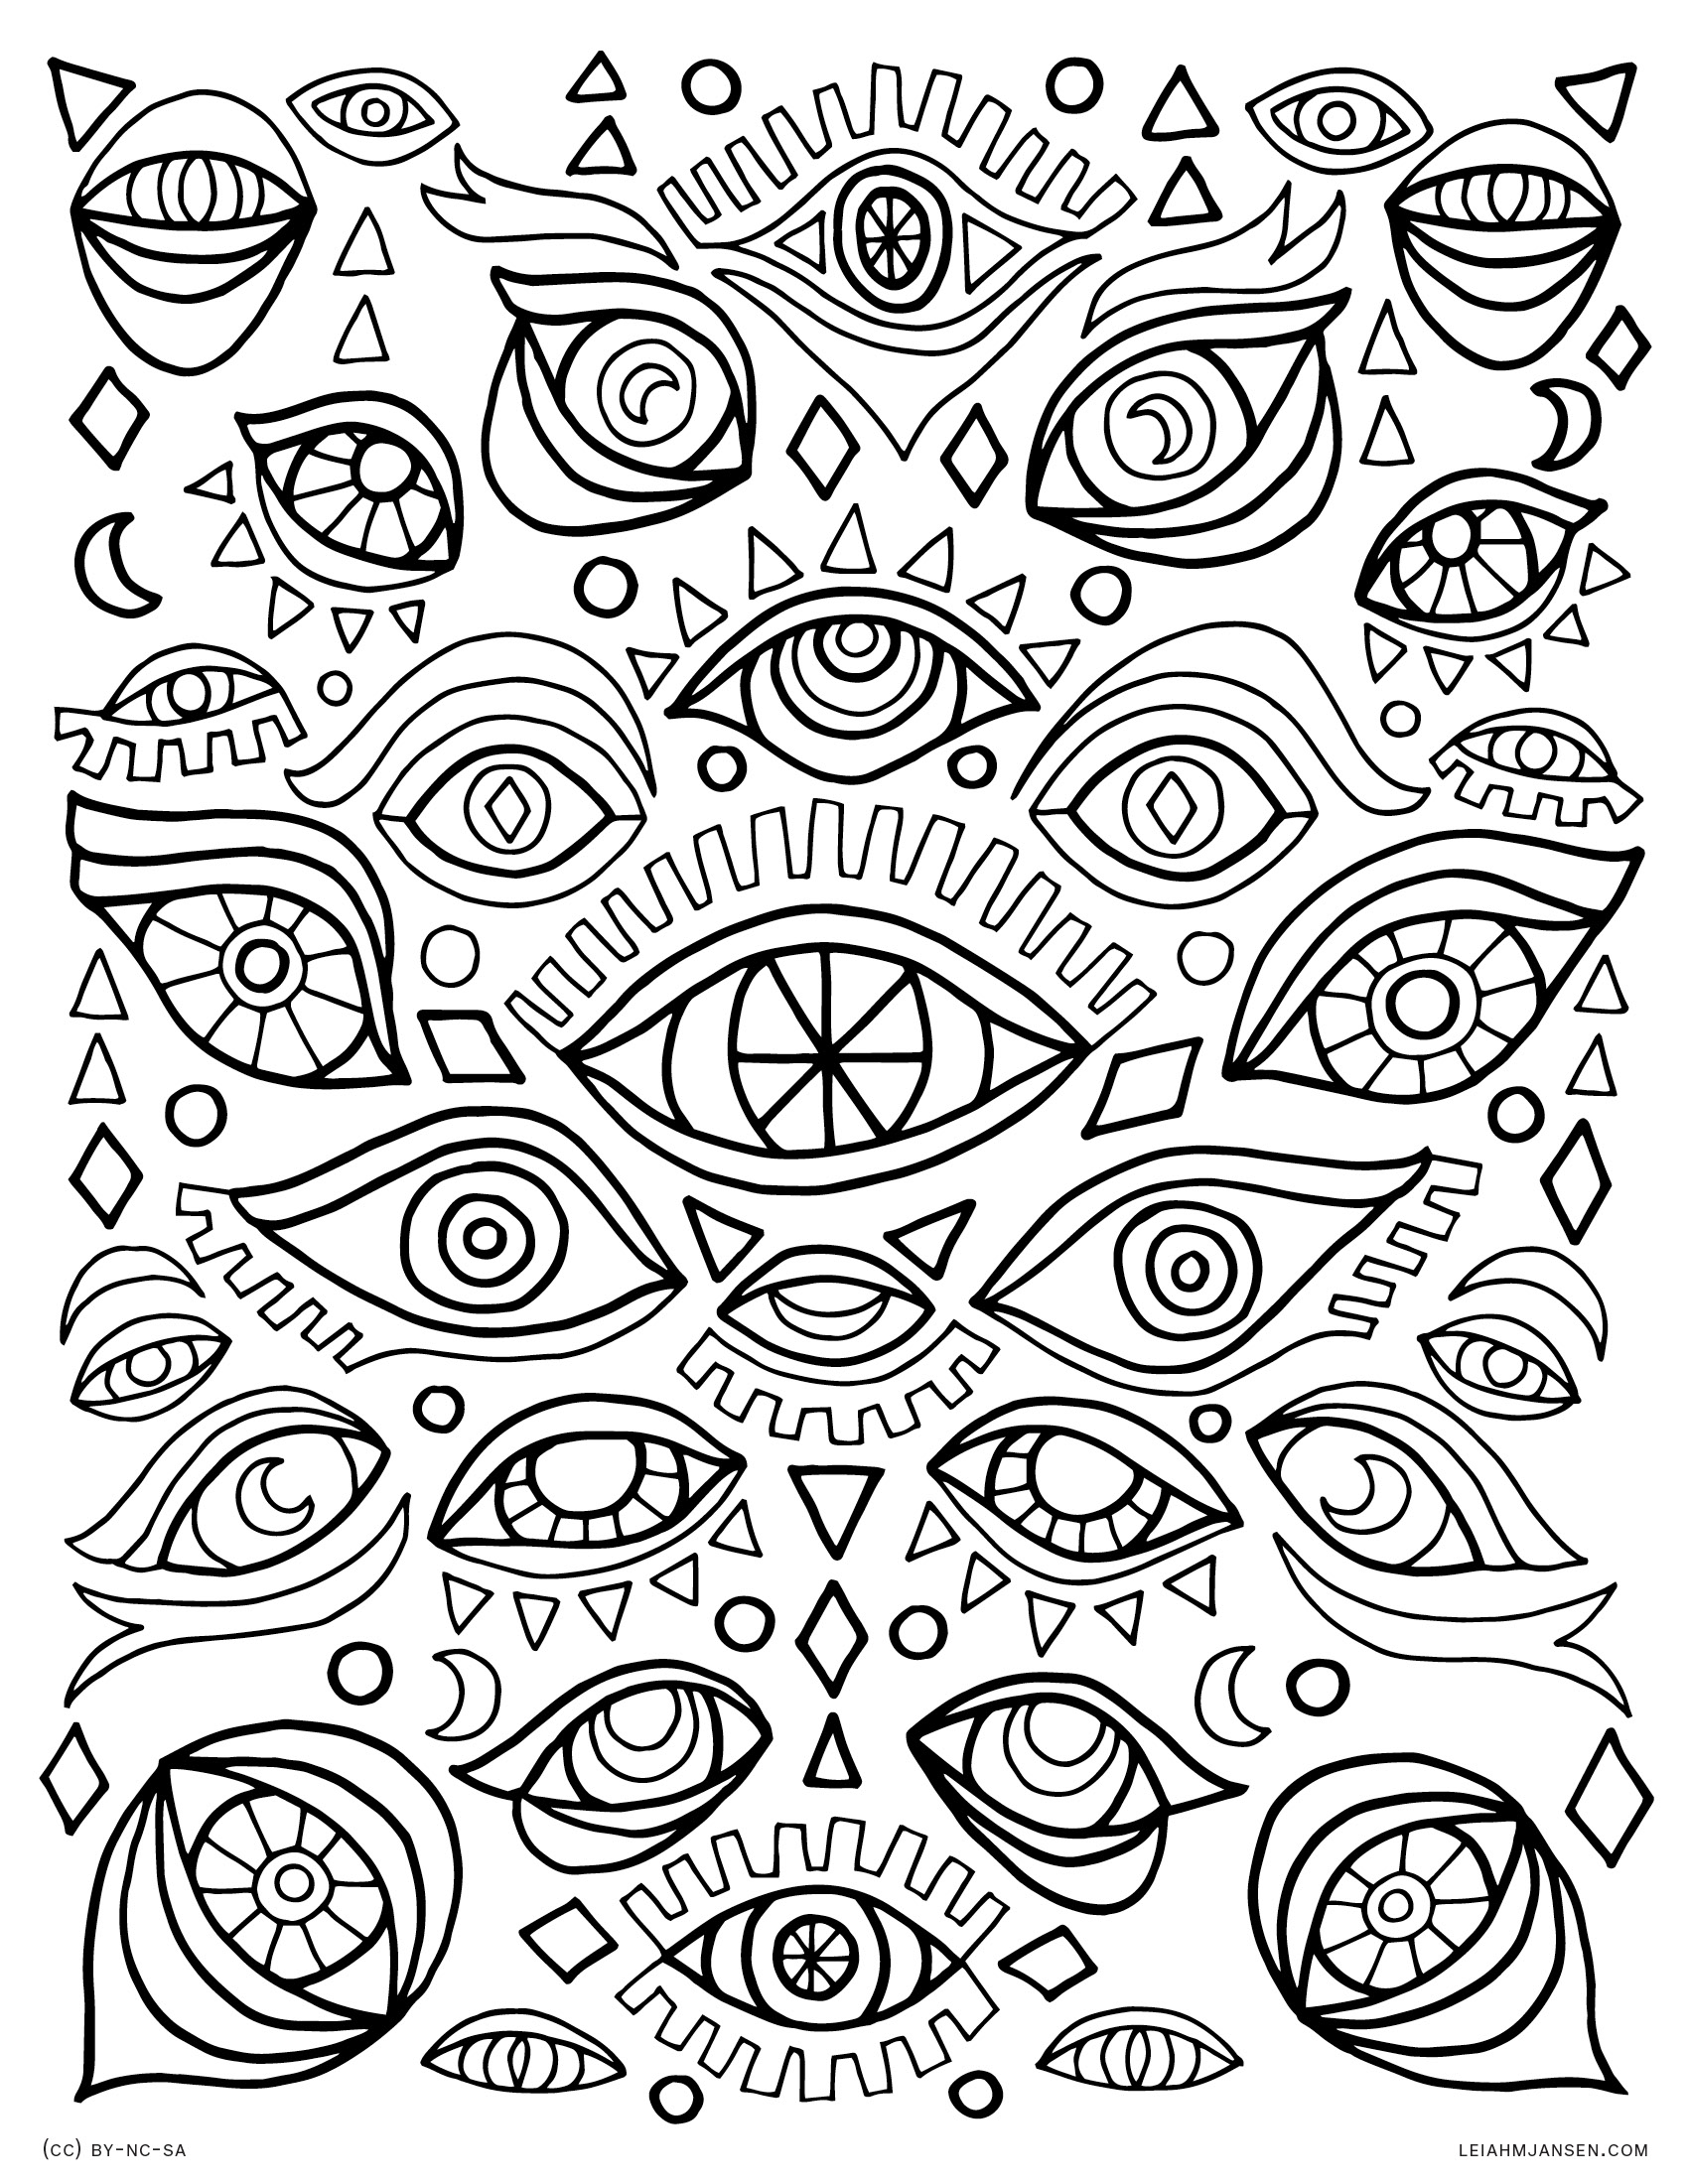 psychedelic coloring pages - photo#39